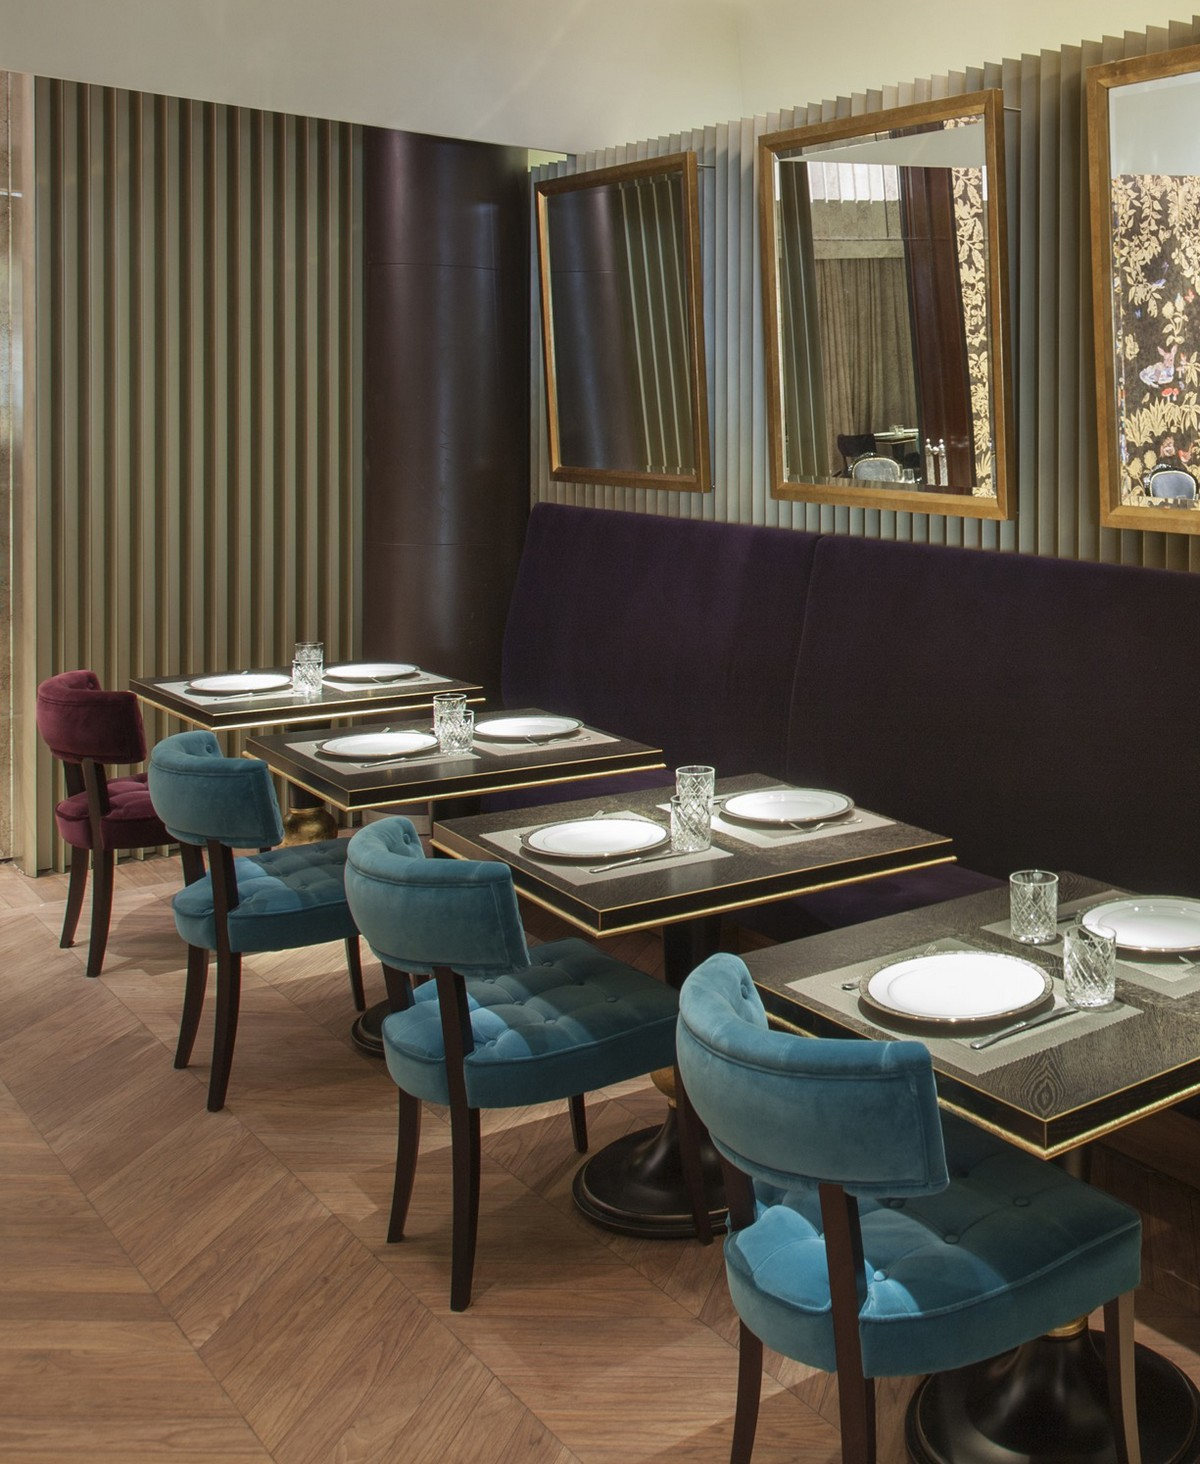 Maison et Objet: Luxury Dining Chairs By Covet House maison et objet Maison et Objet: Luxury Dining Chairs By Covet House zulu 1